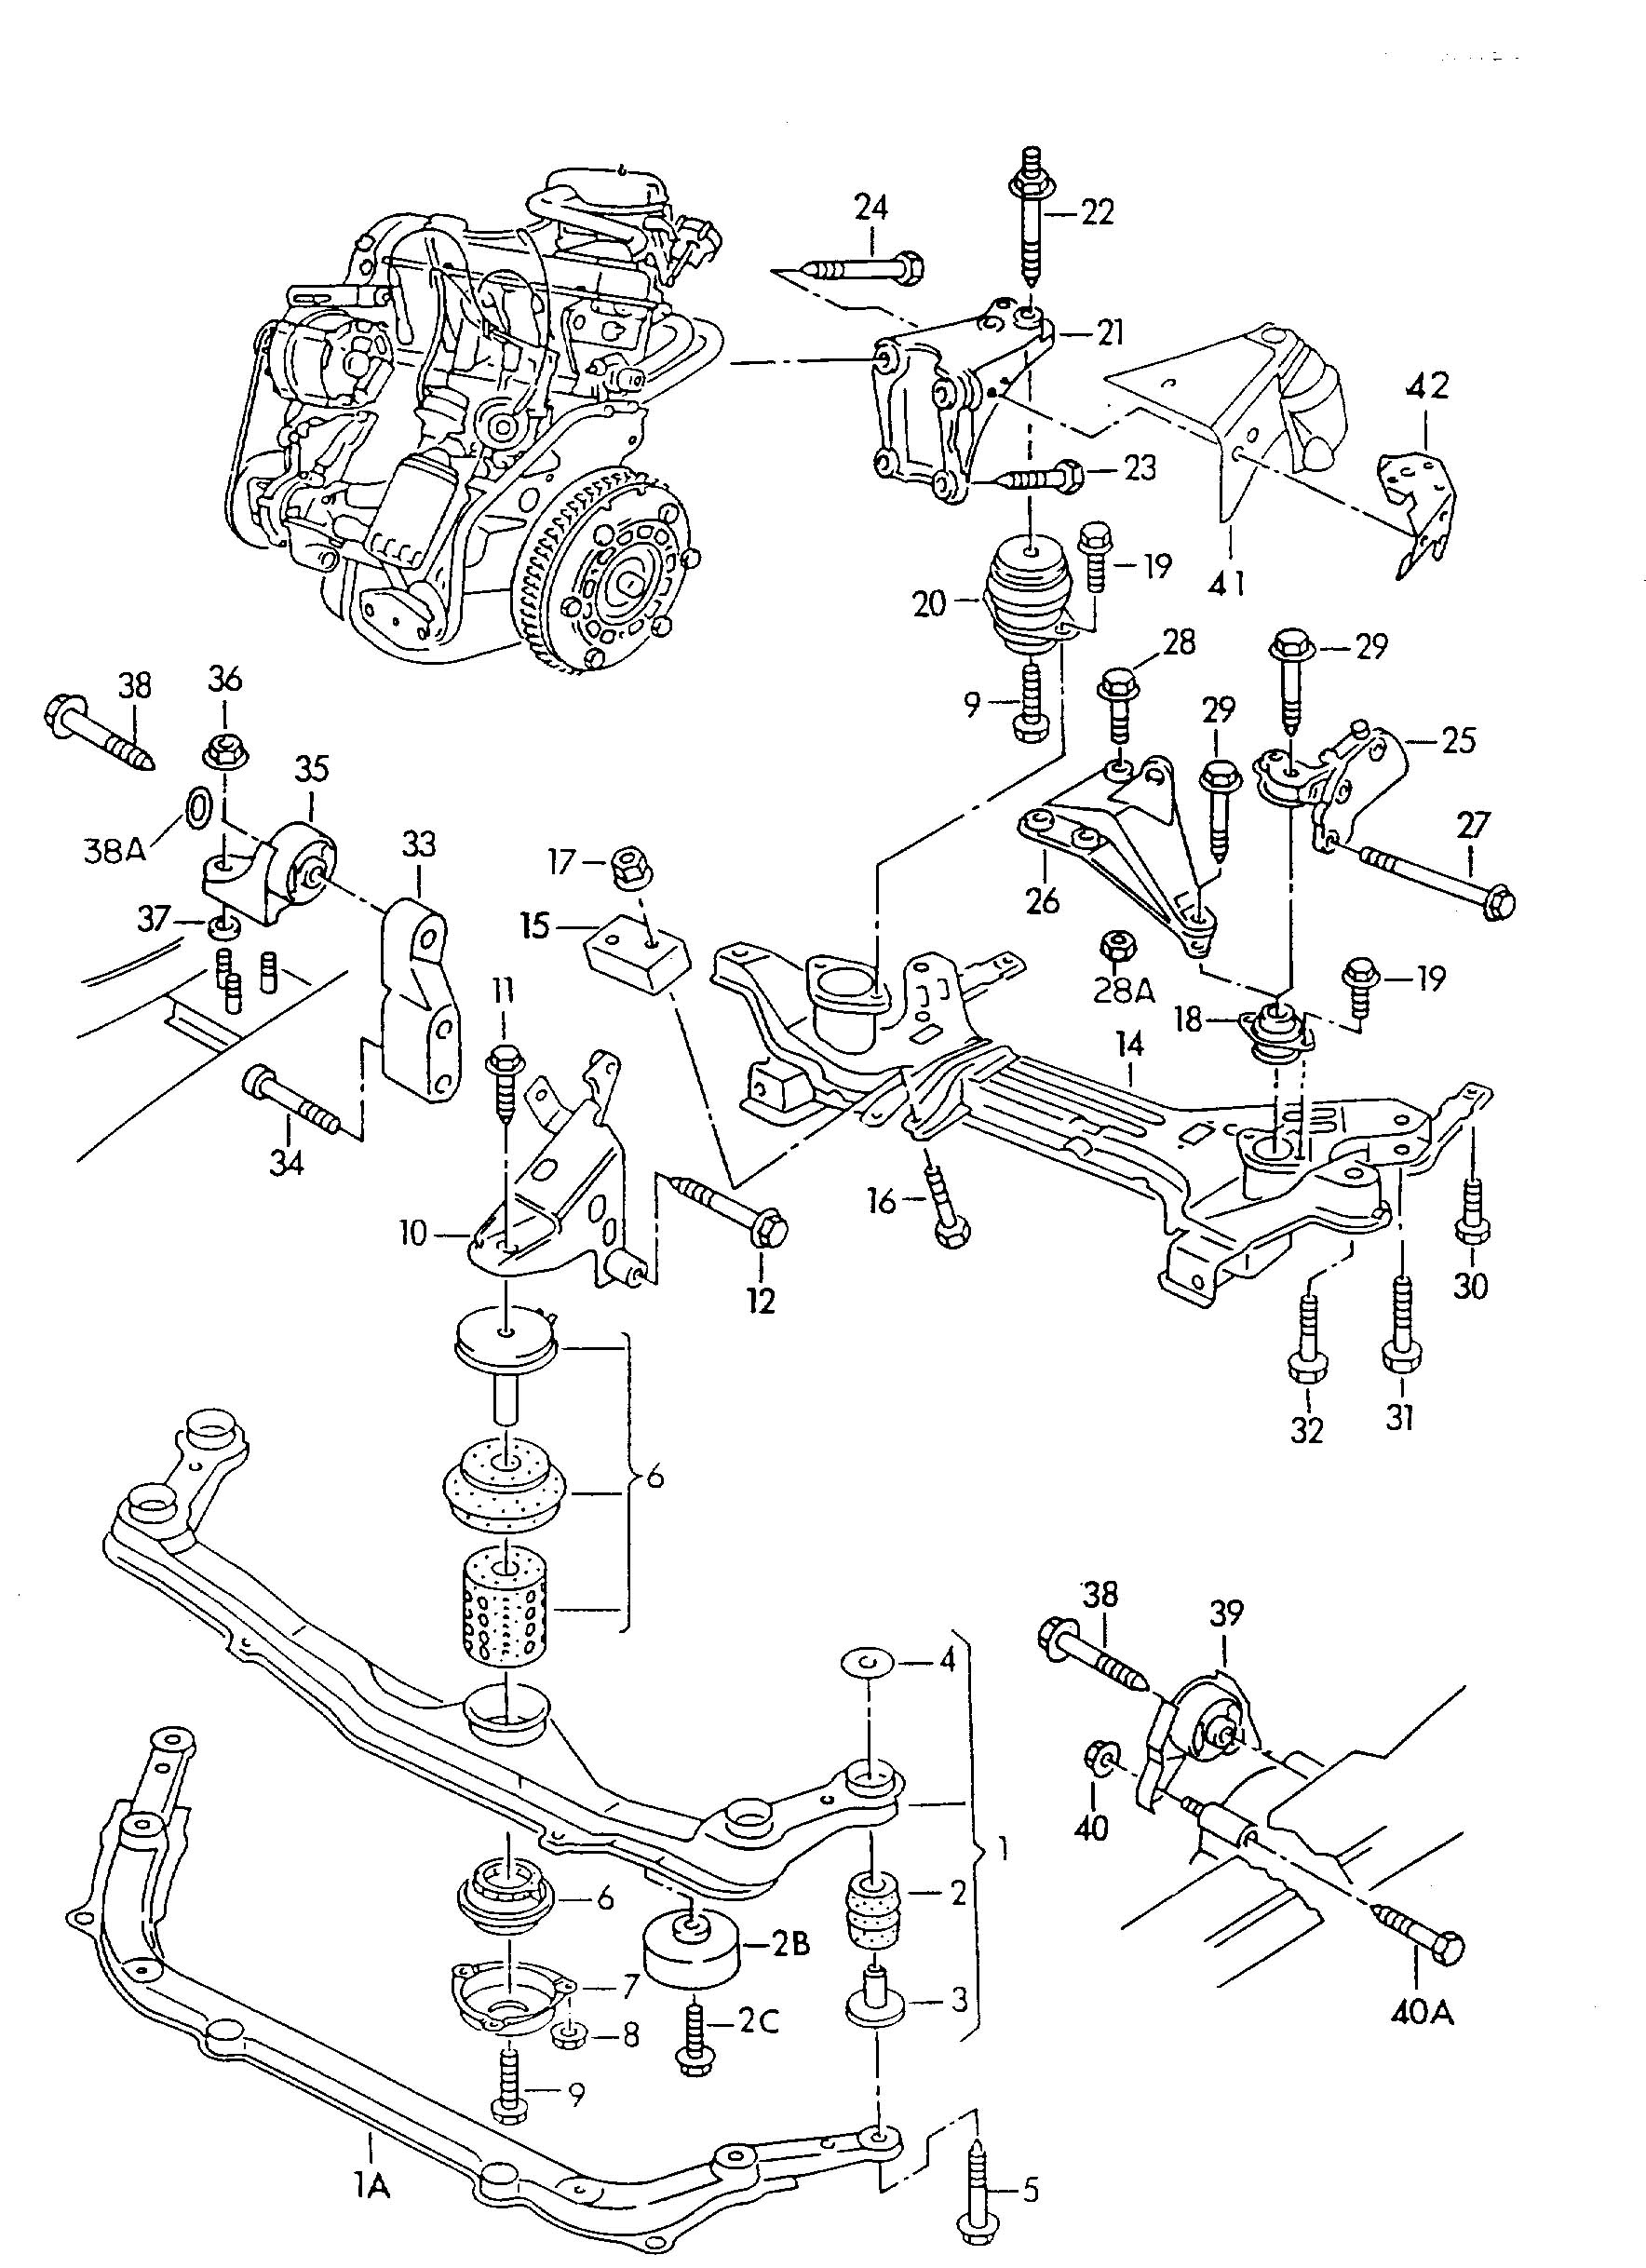 2003 Volkswagen Jetta Body Parts Diagram